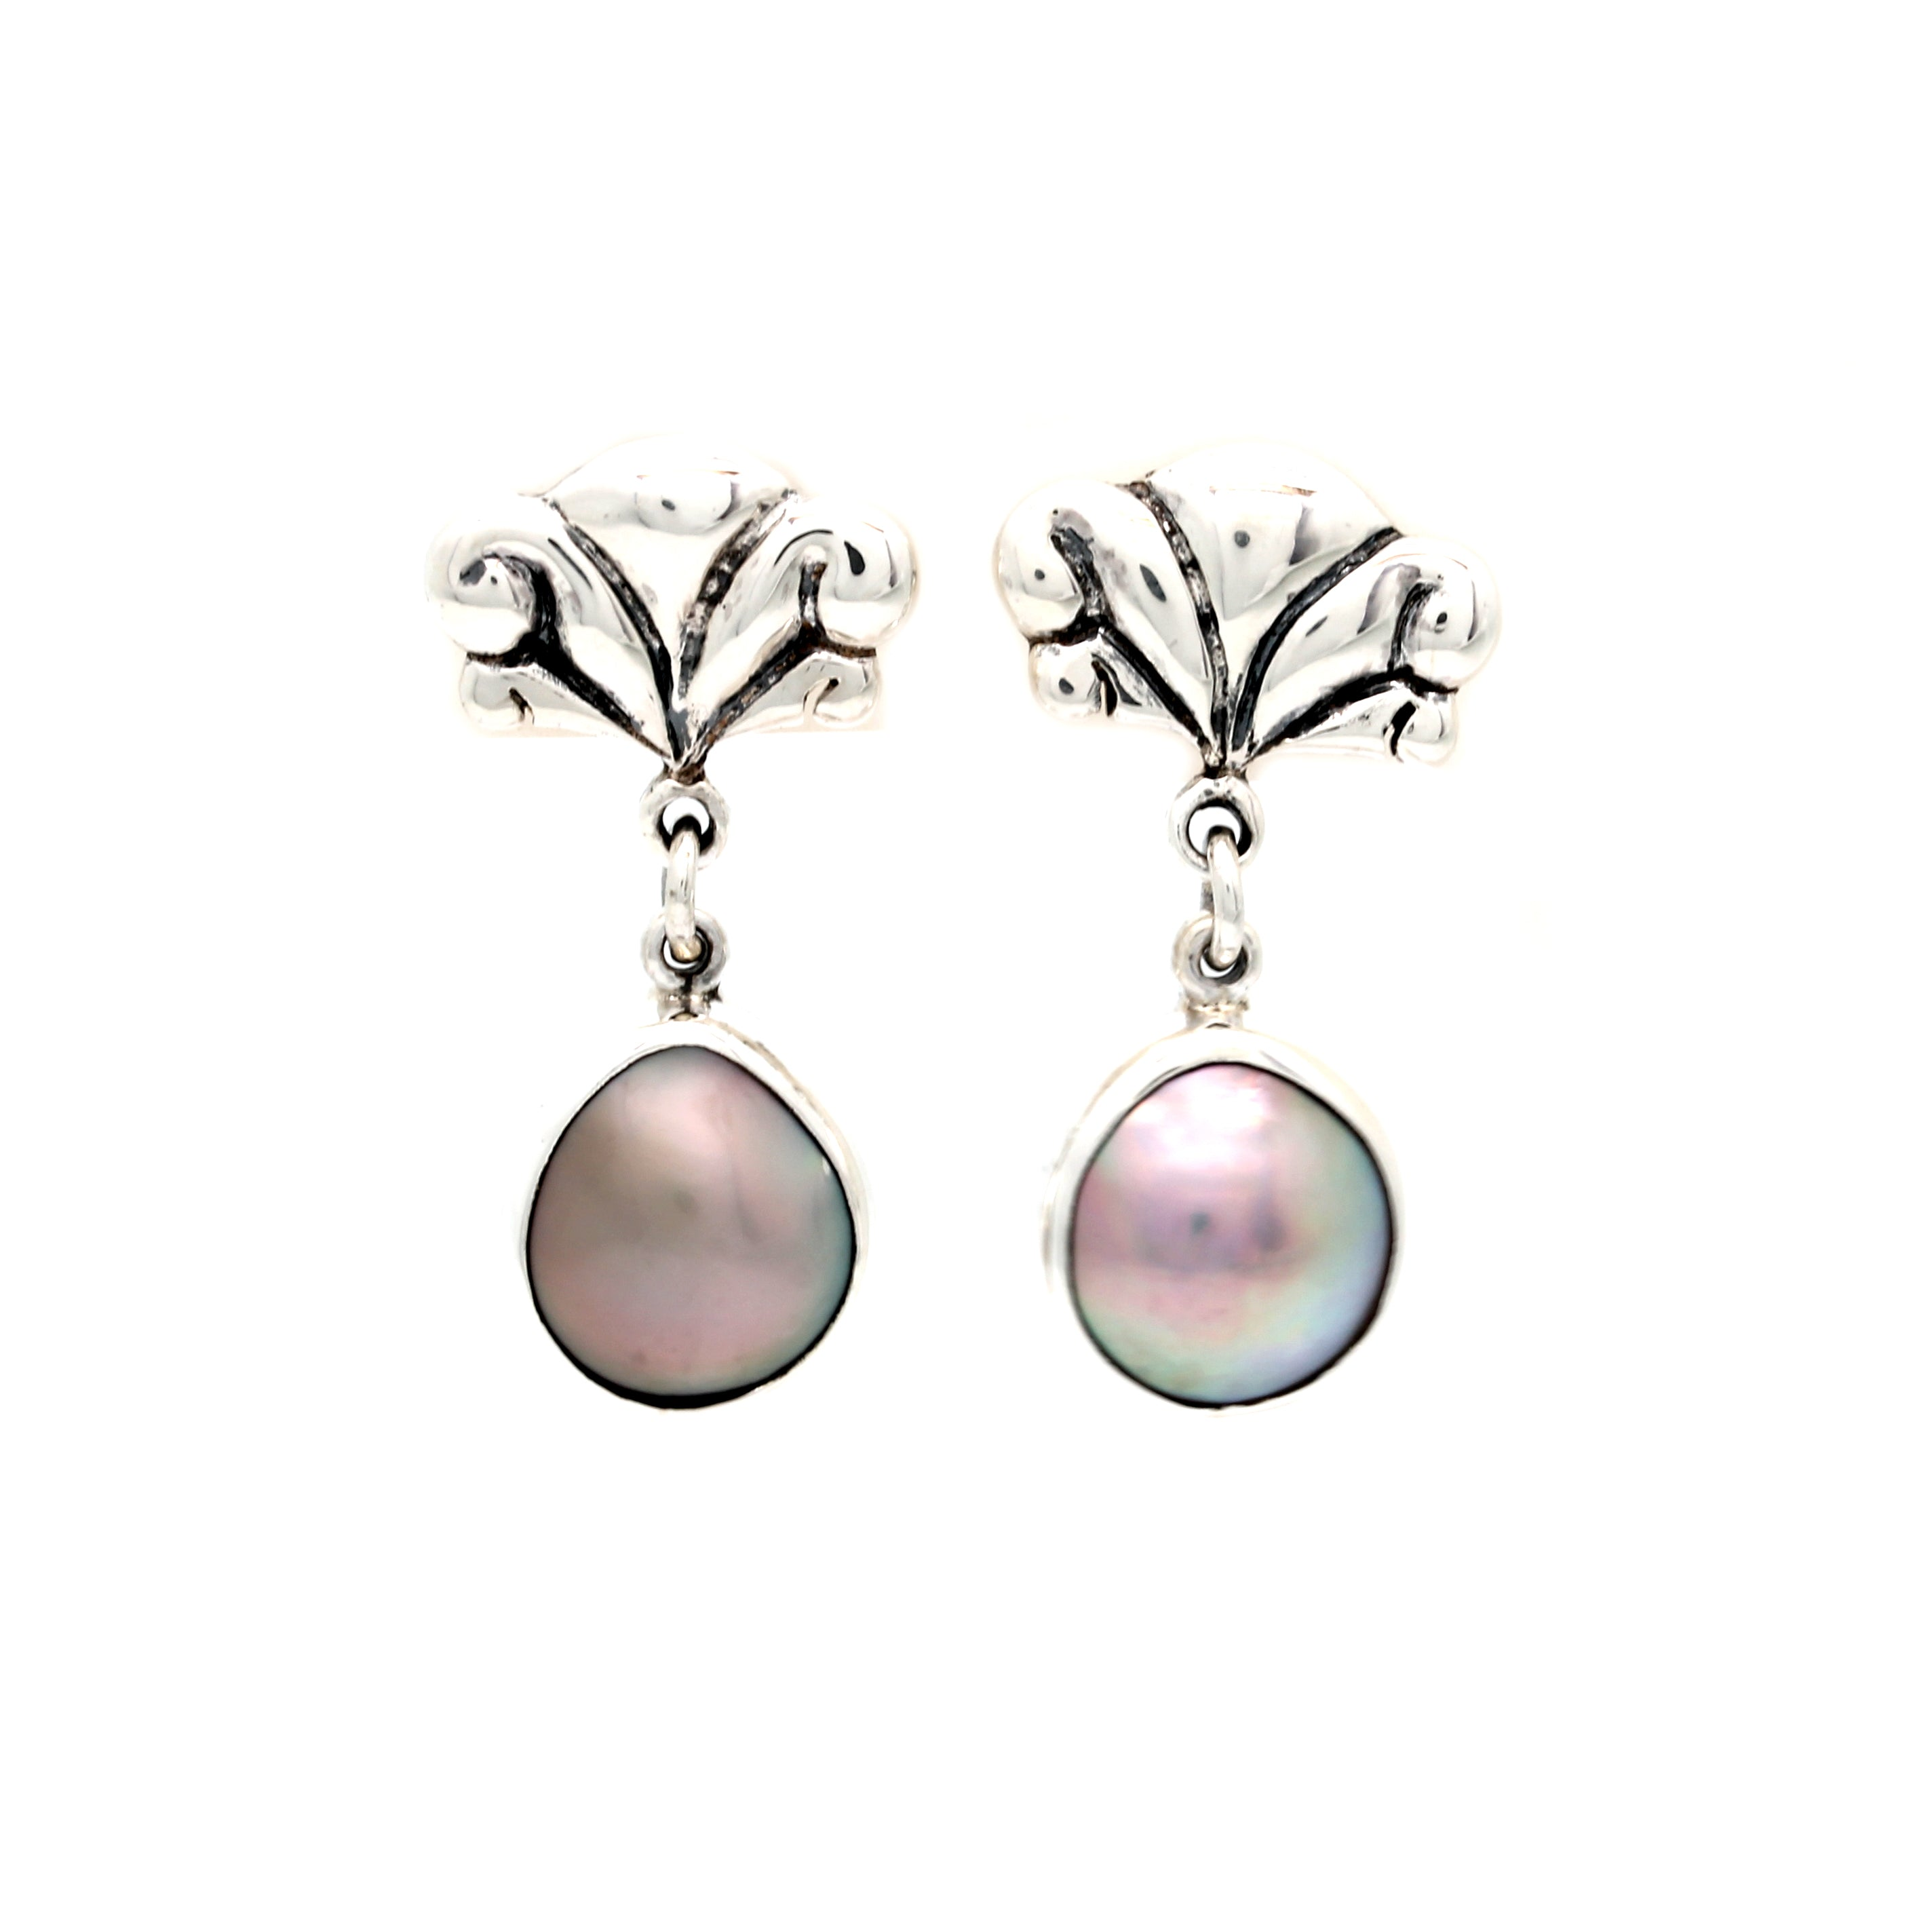 Silver Earrings with Cortez Mabes by Priscila Canales